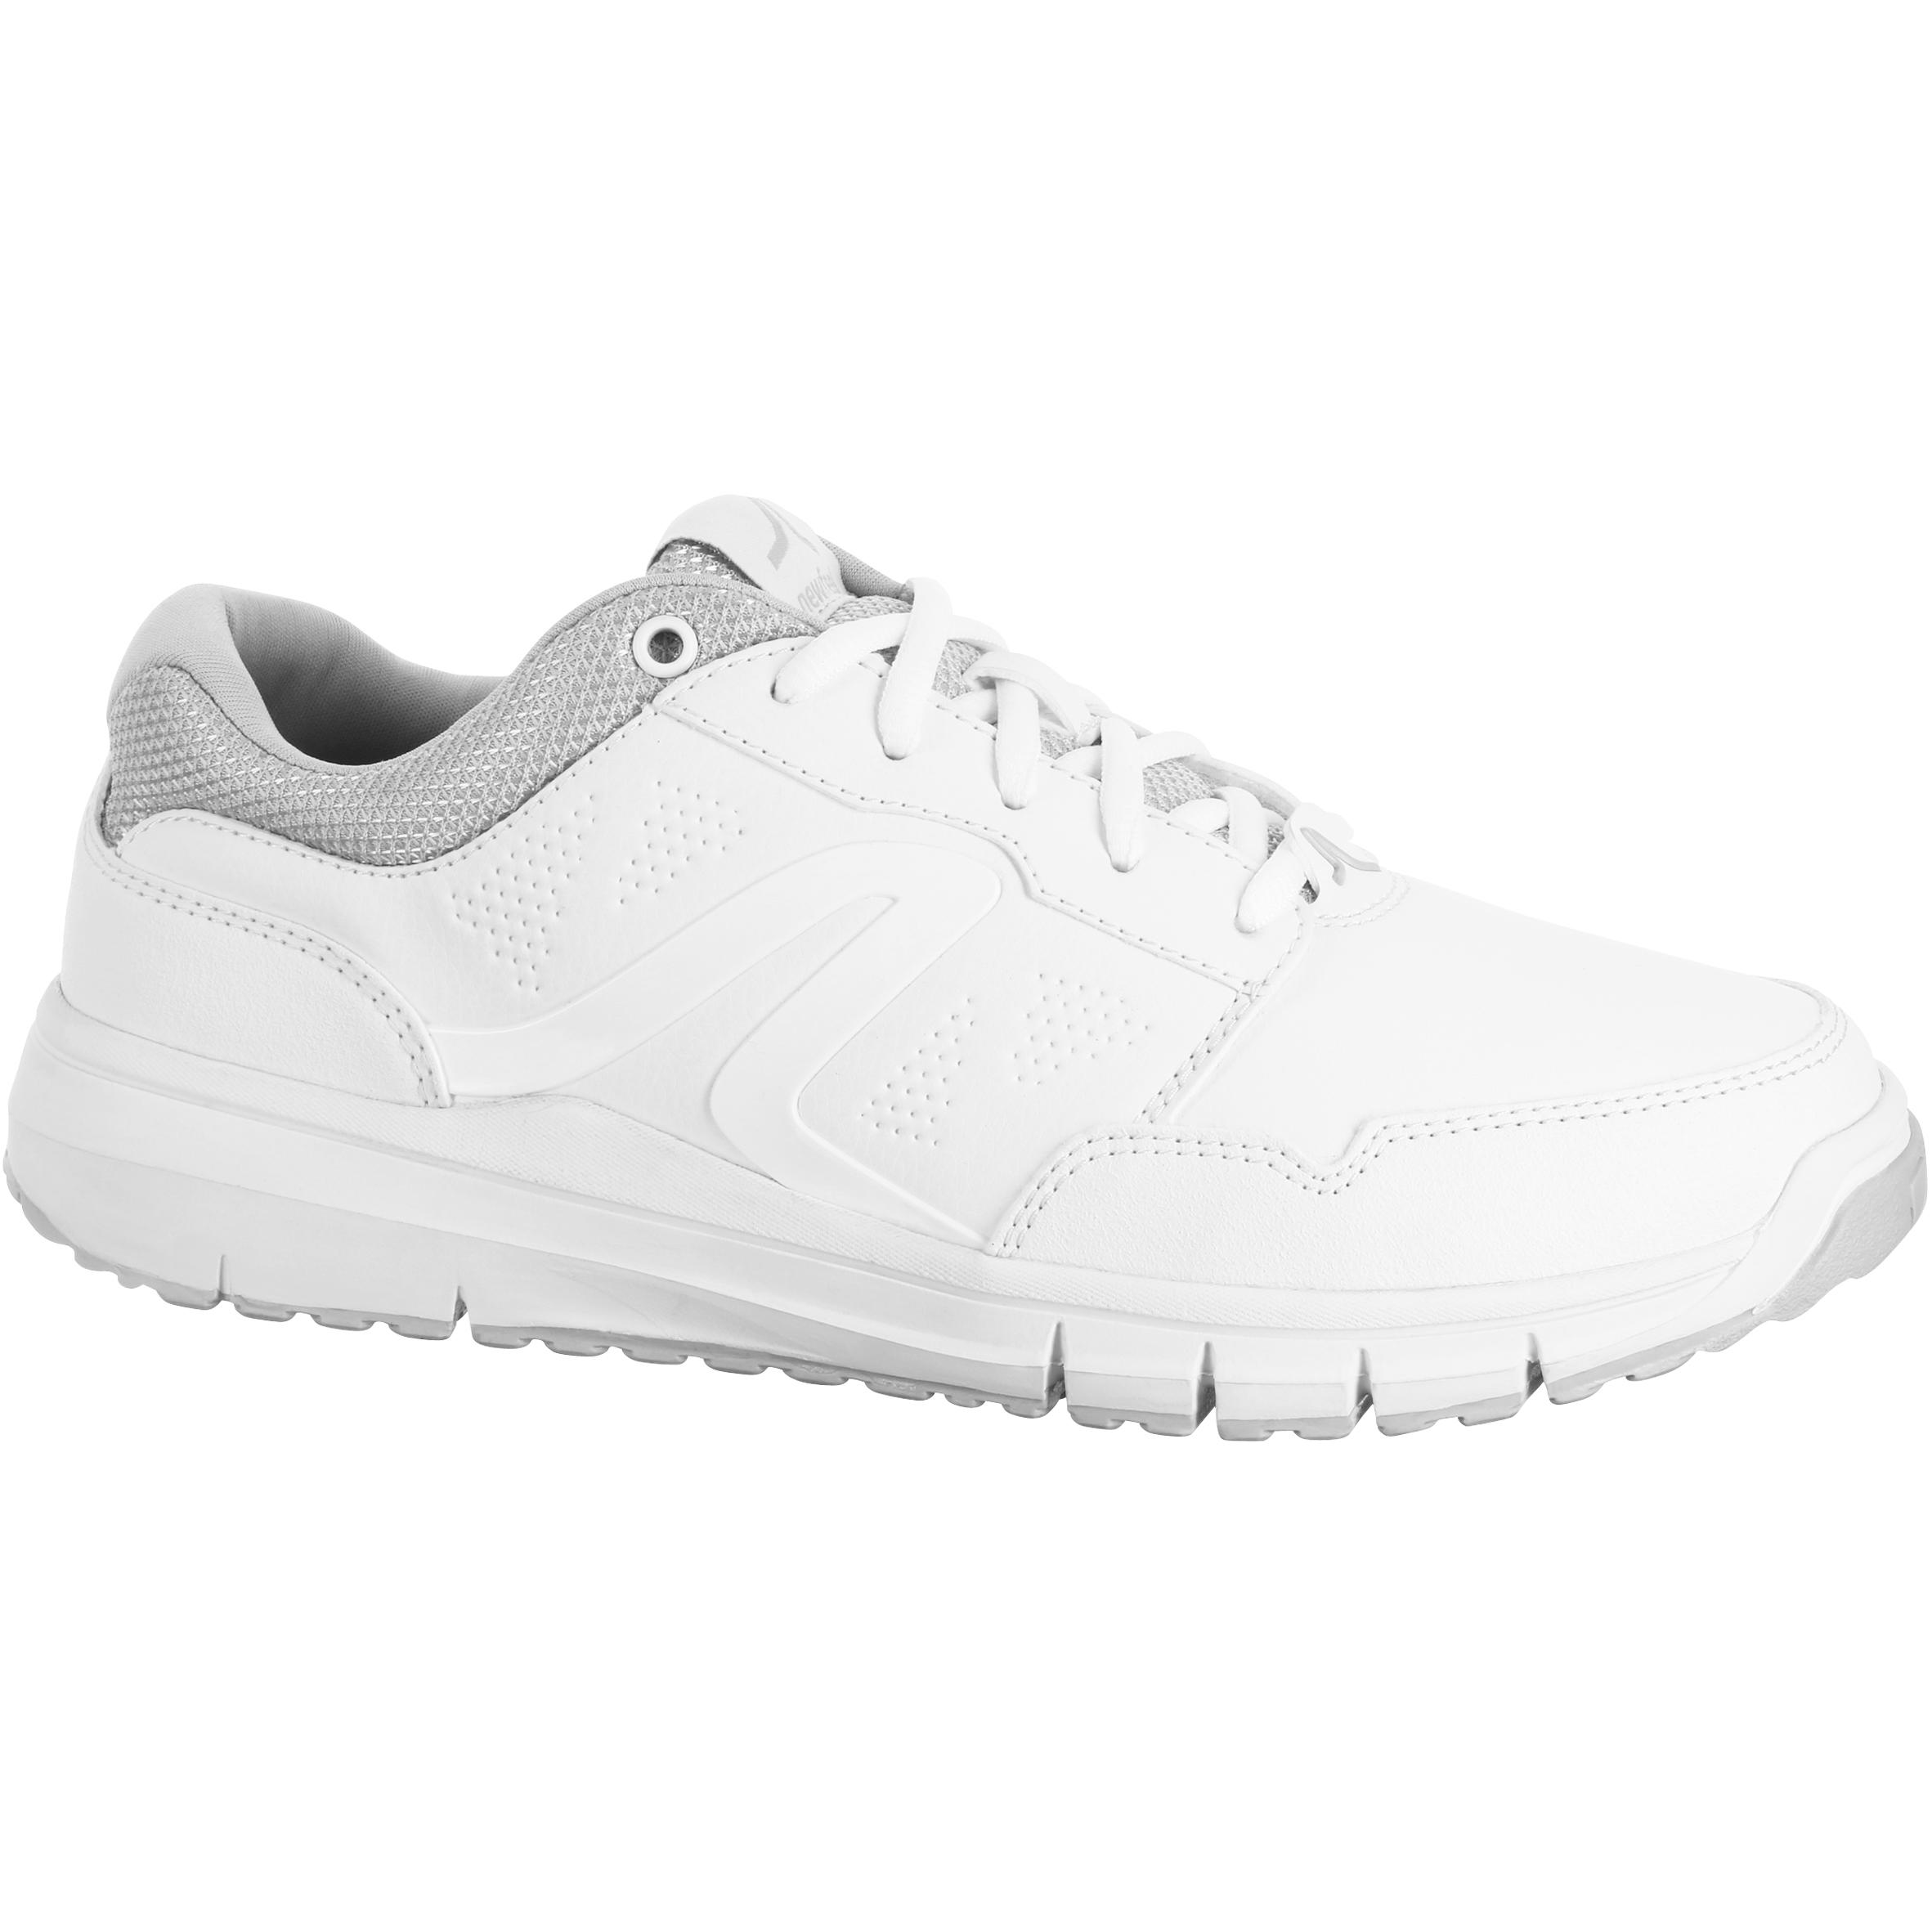 Protect 140 Women's Fitness Walking Shoes - White